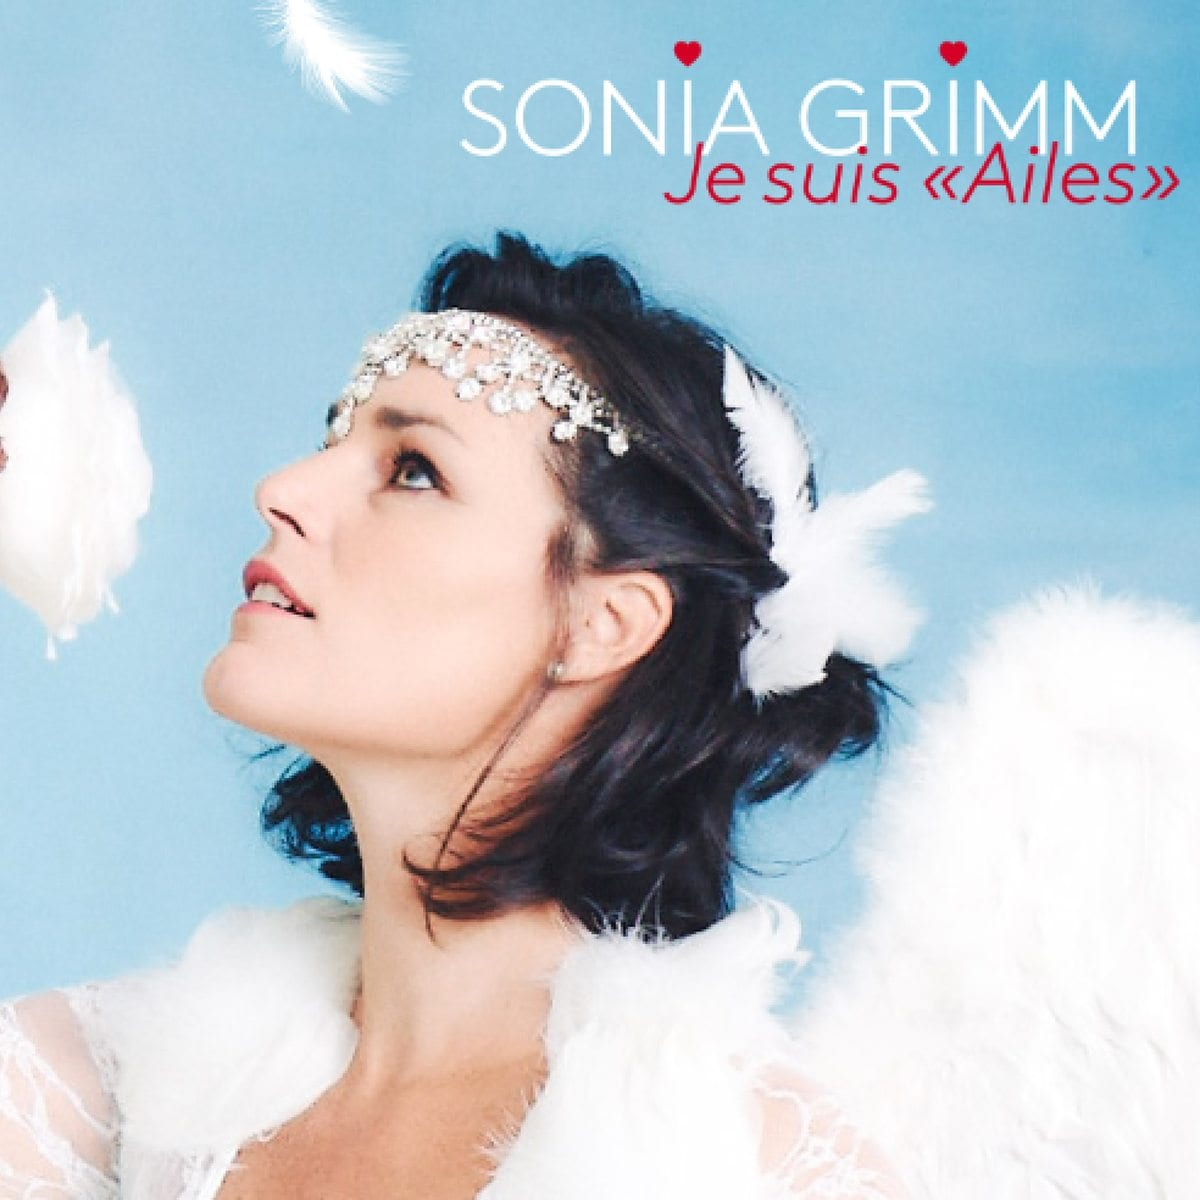 Sonia Grimm - Je suis ailes - CD